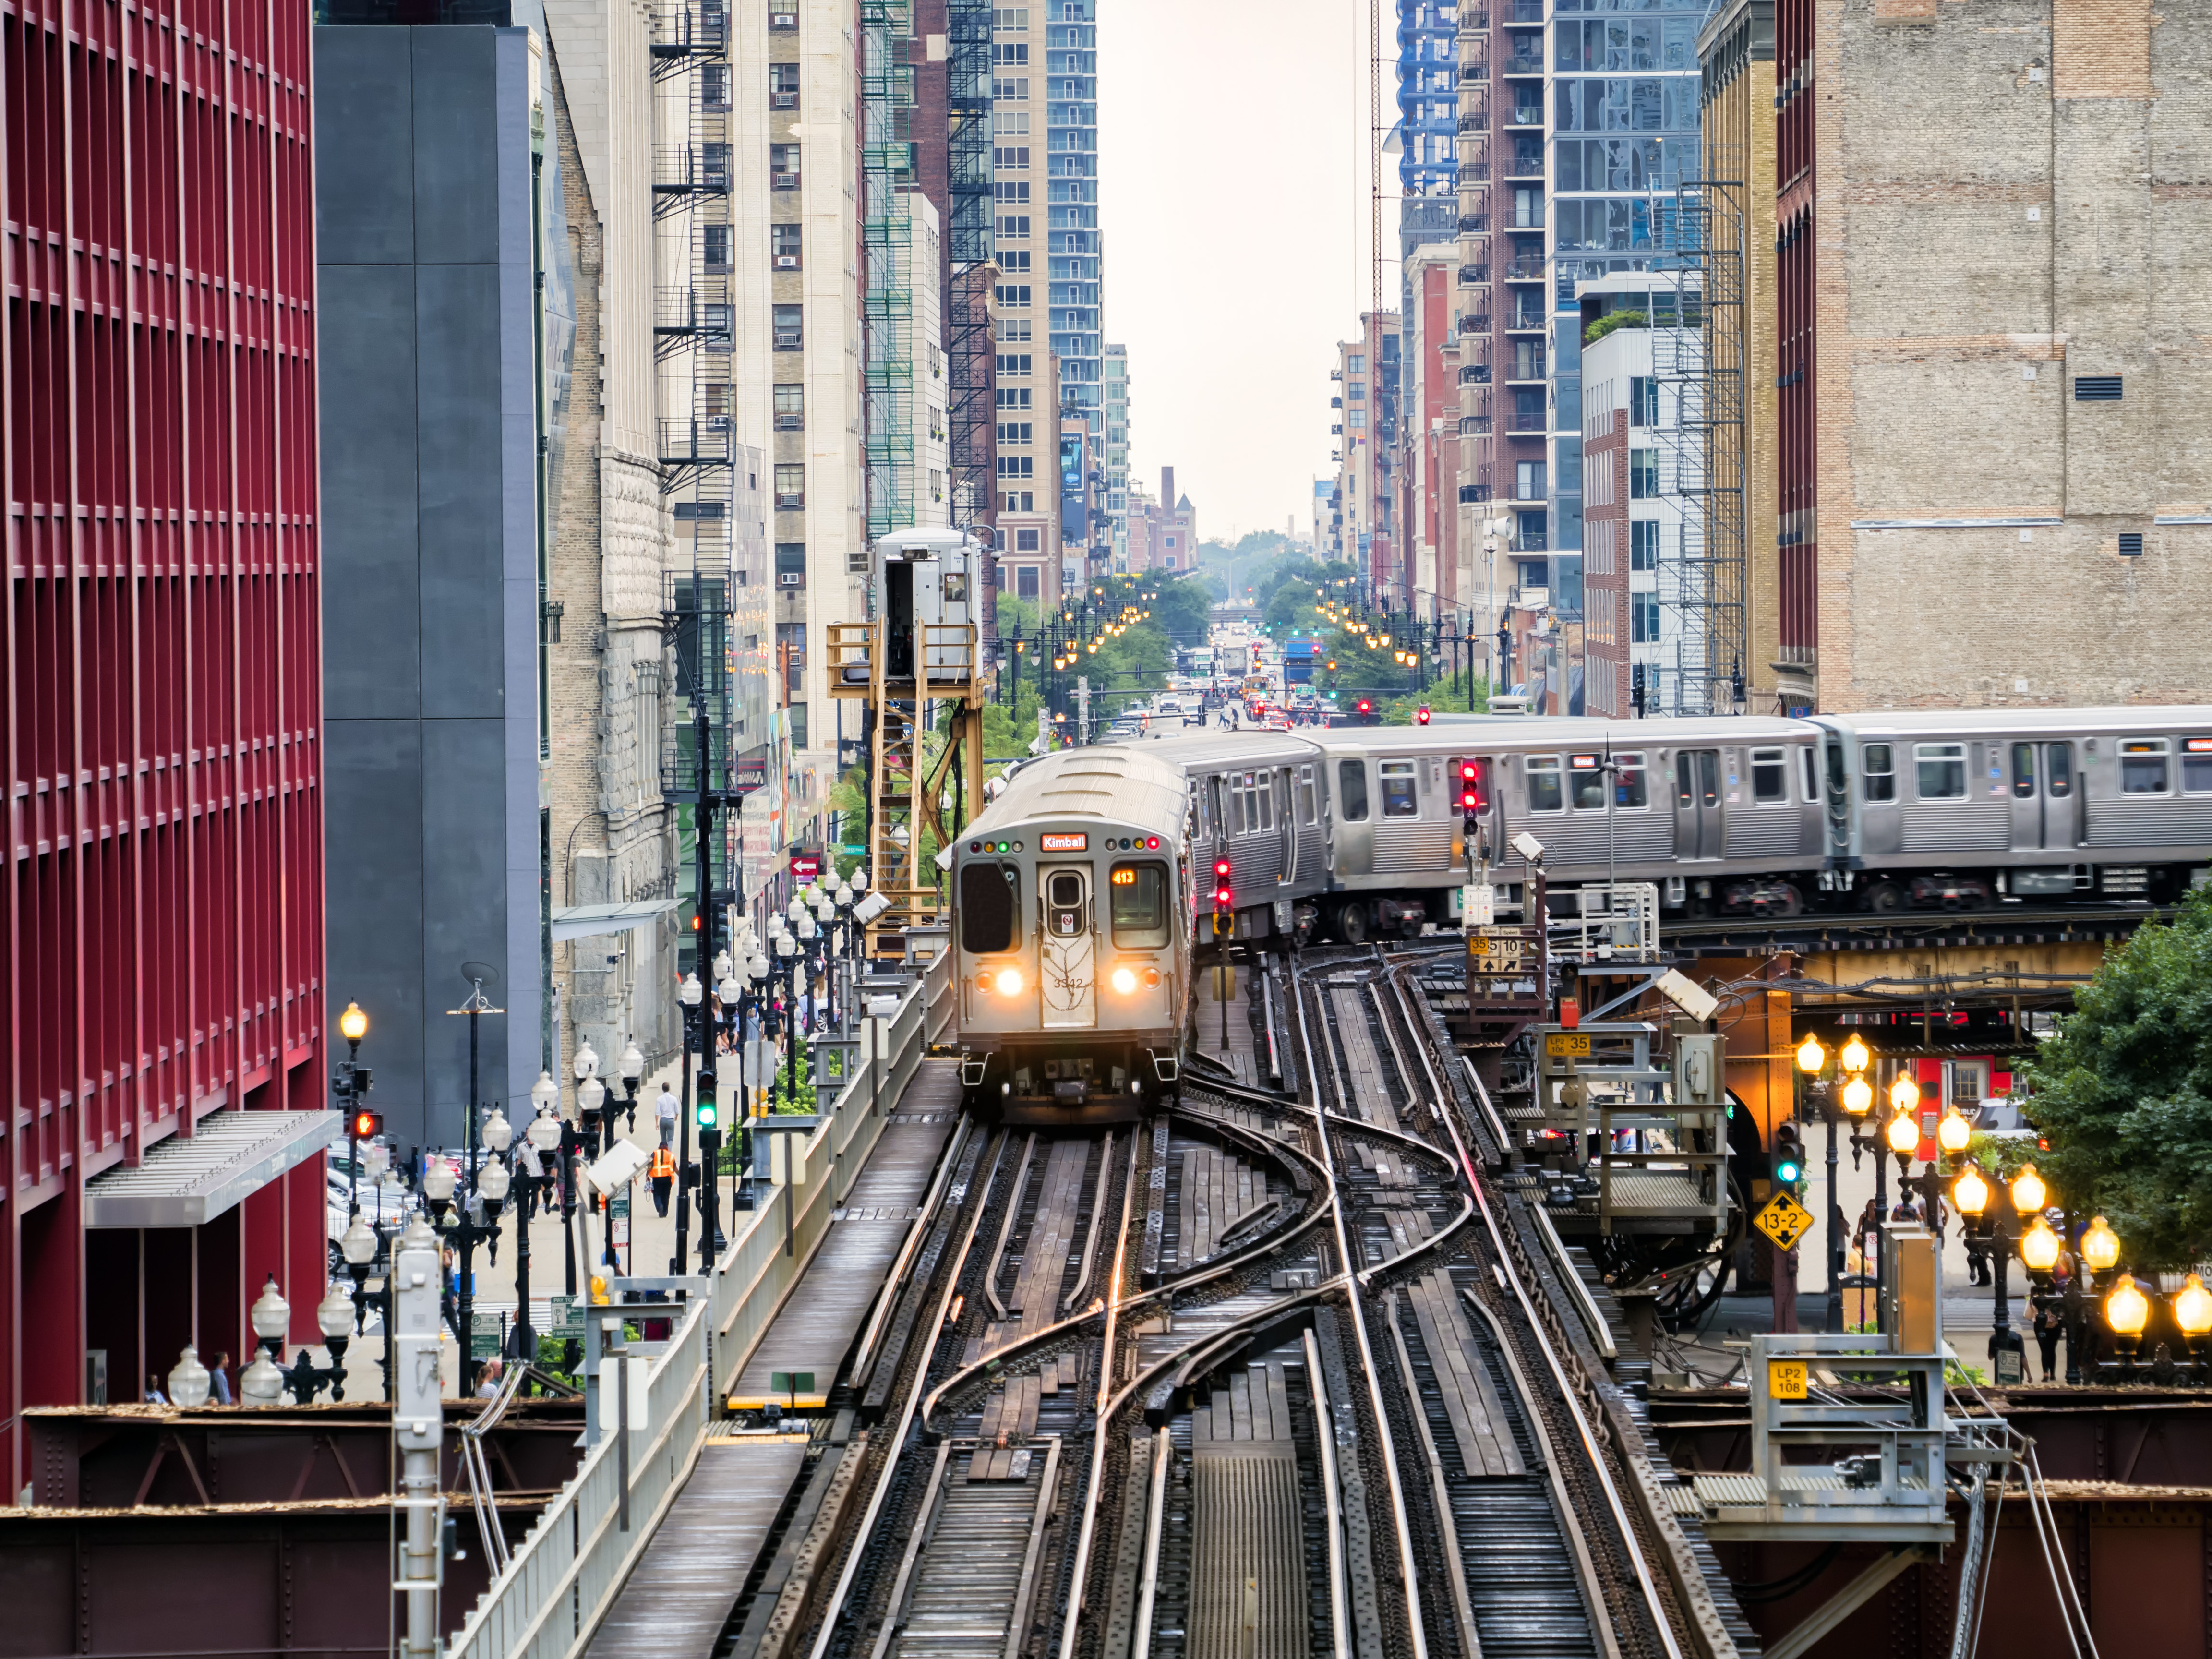 A view of the elevated train tracks and a CTA car running between buildings.